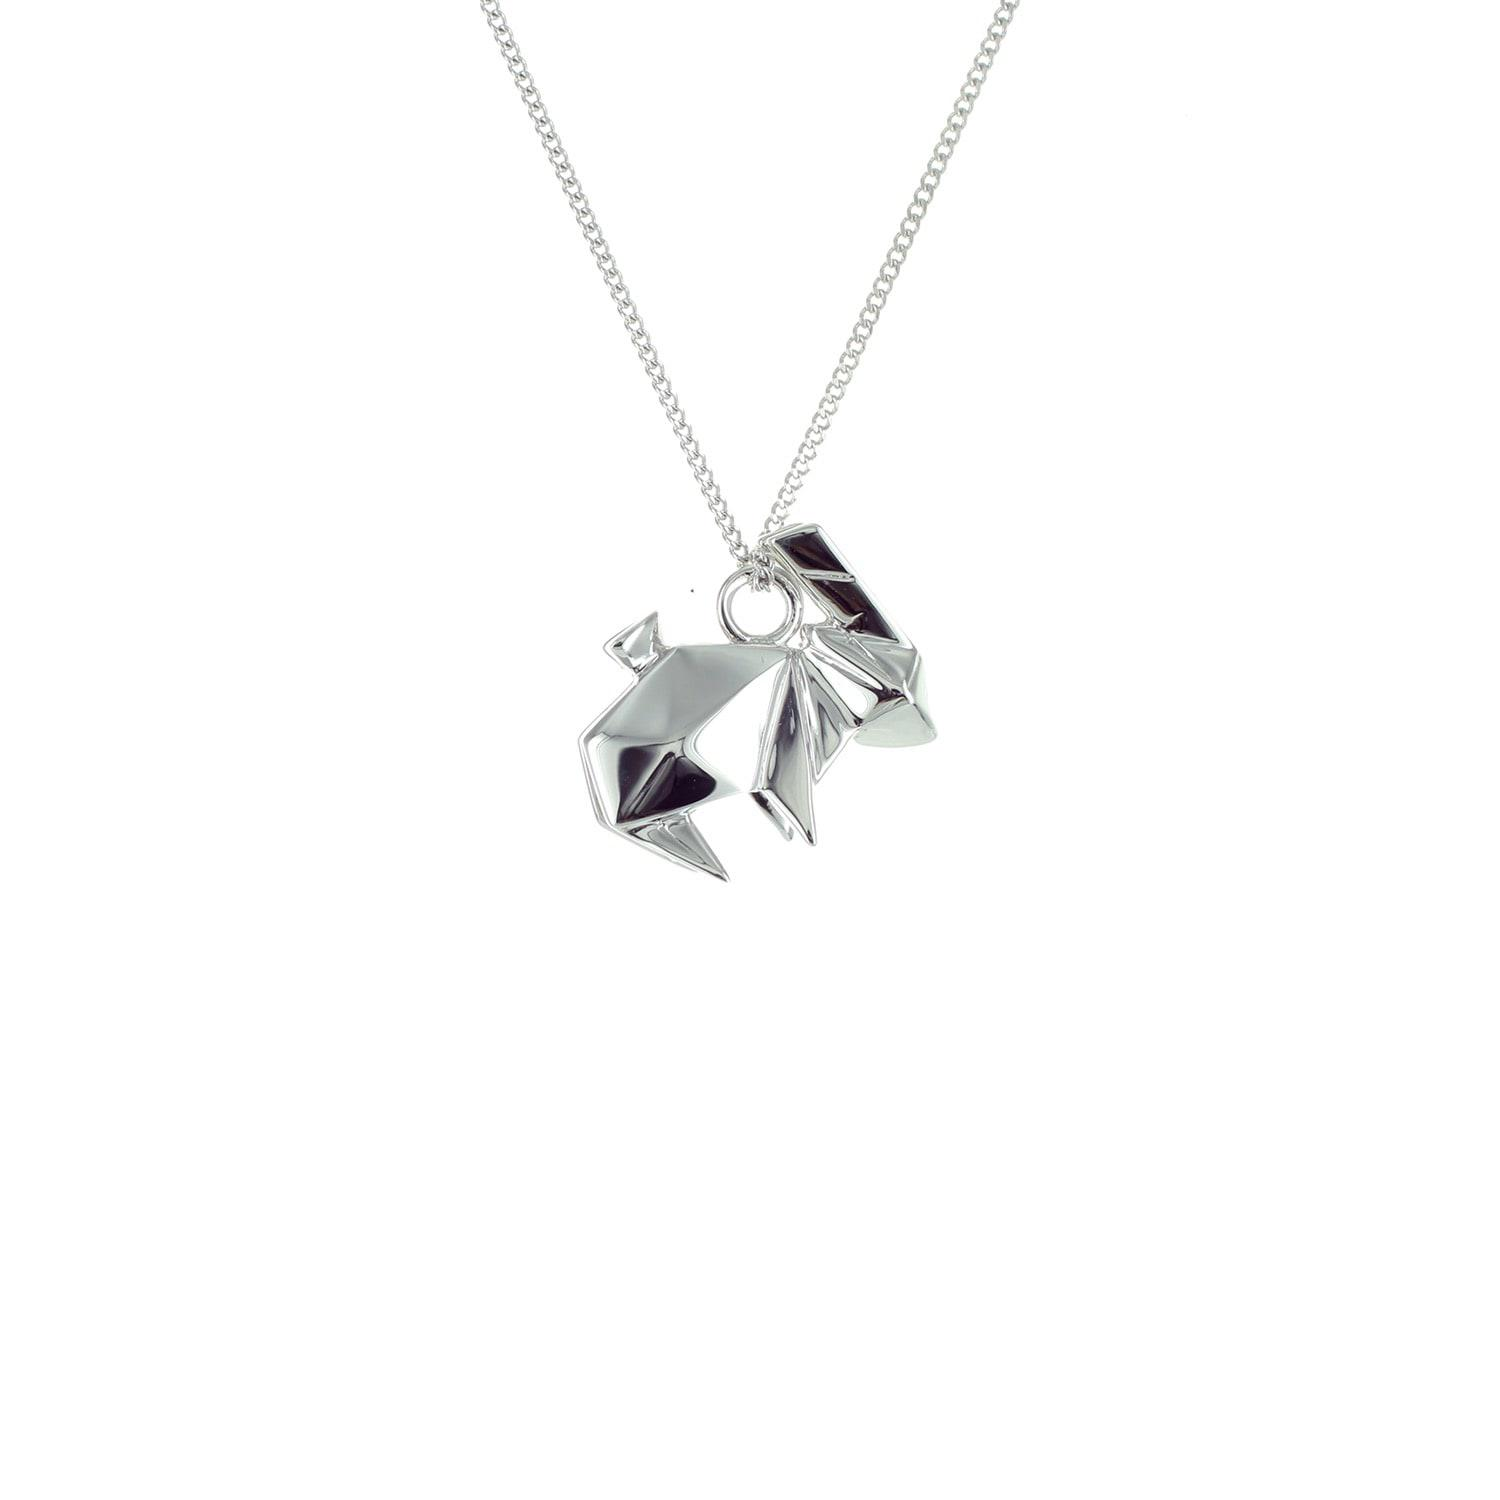 Origami Jewellery Black Silver Mini Rabbit Origami Necklace QVZsYf